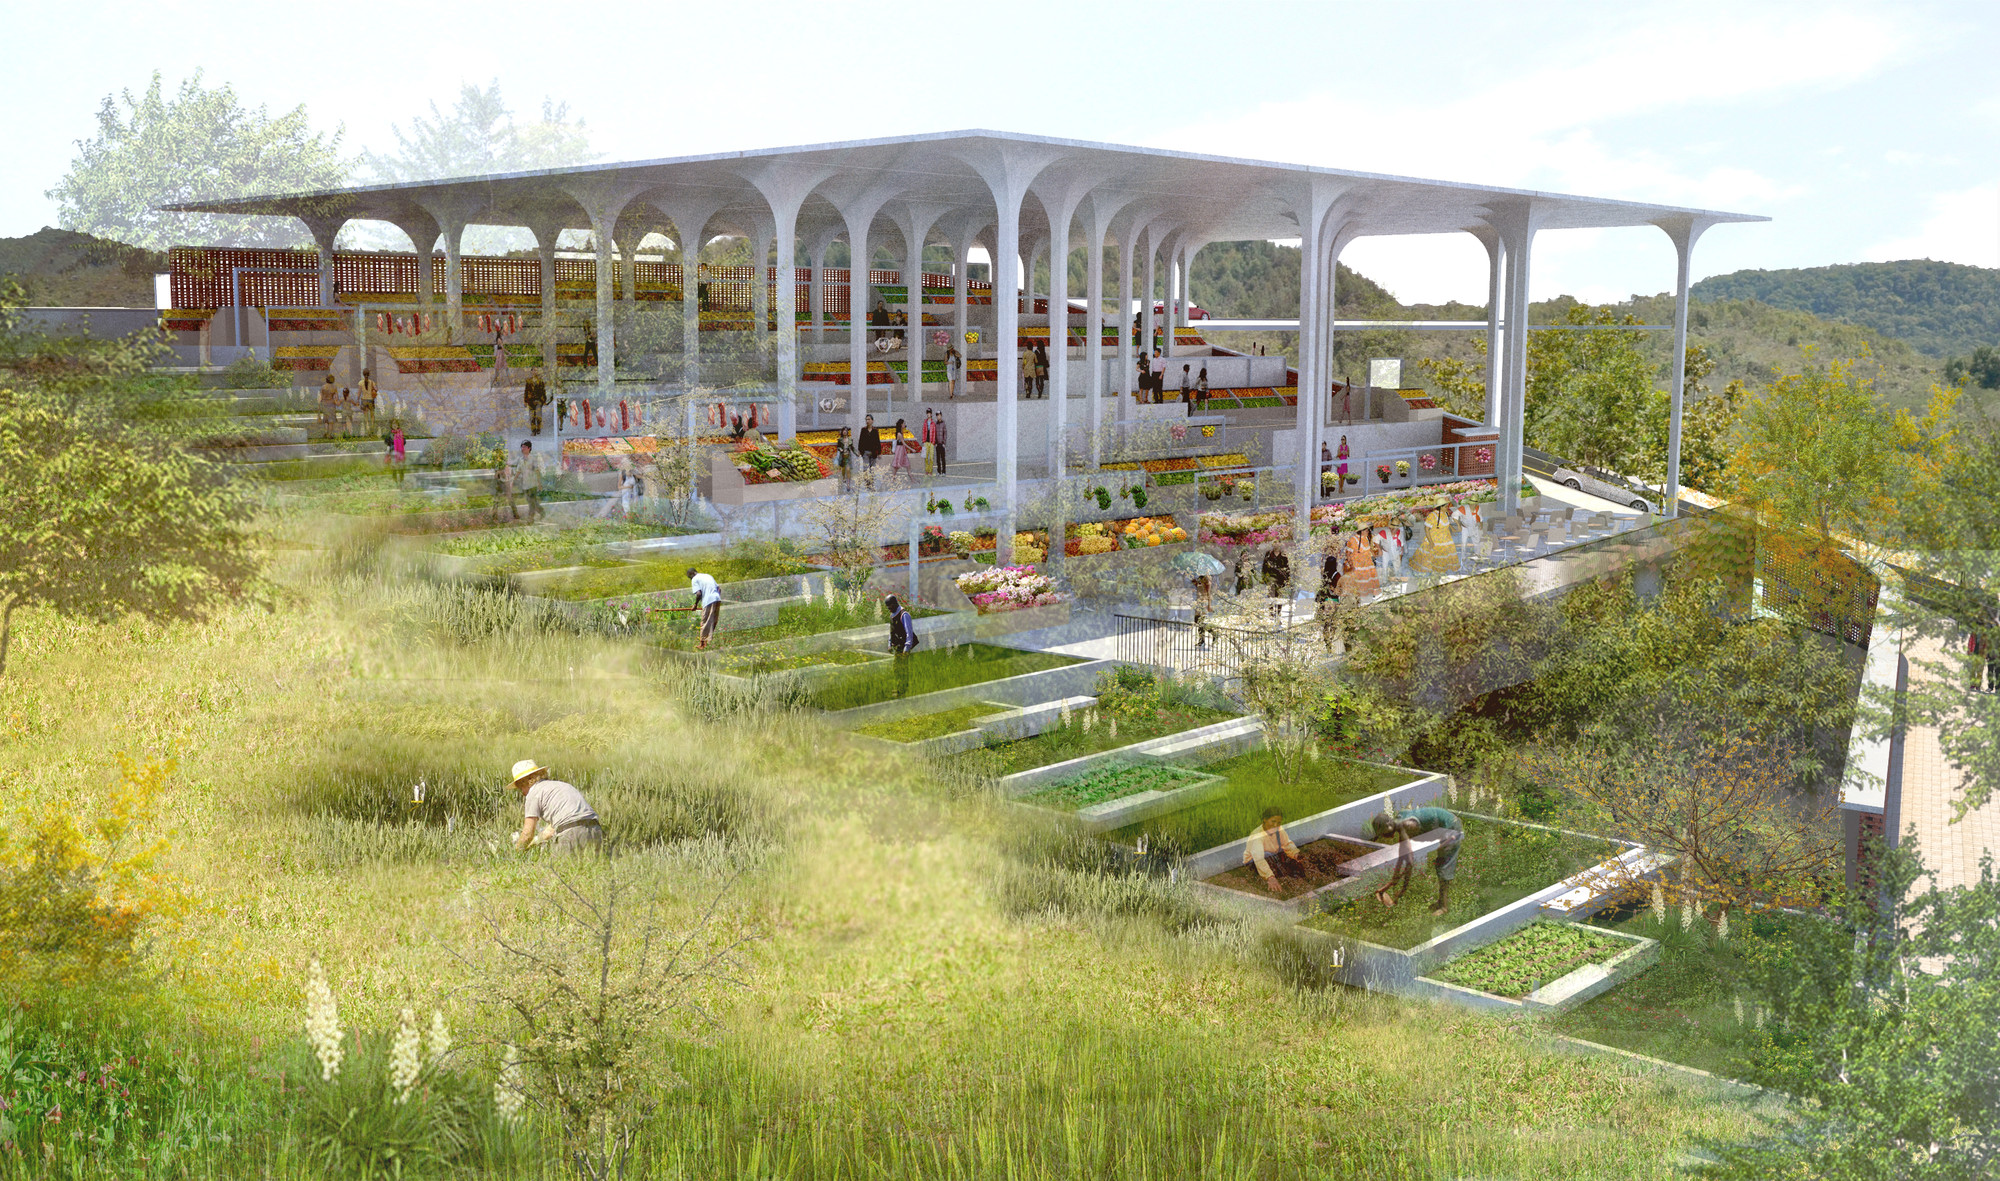 Lightweight Concrete Structure Wins Competition for New Gramalote Market Plaza, Courtesy of Rodrigo Chain + Jheny Nieto